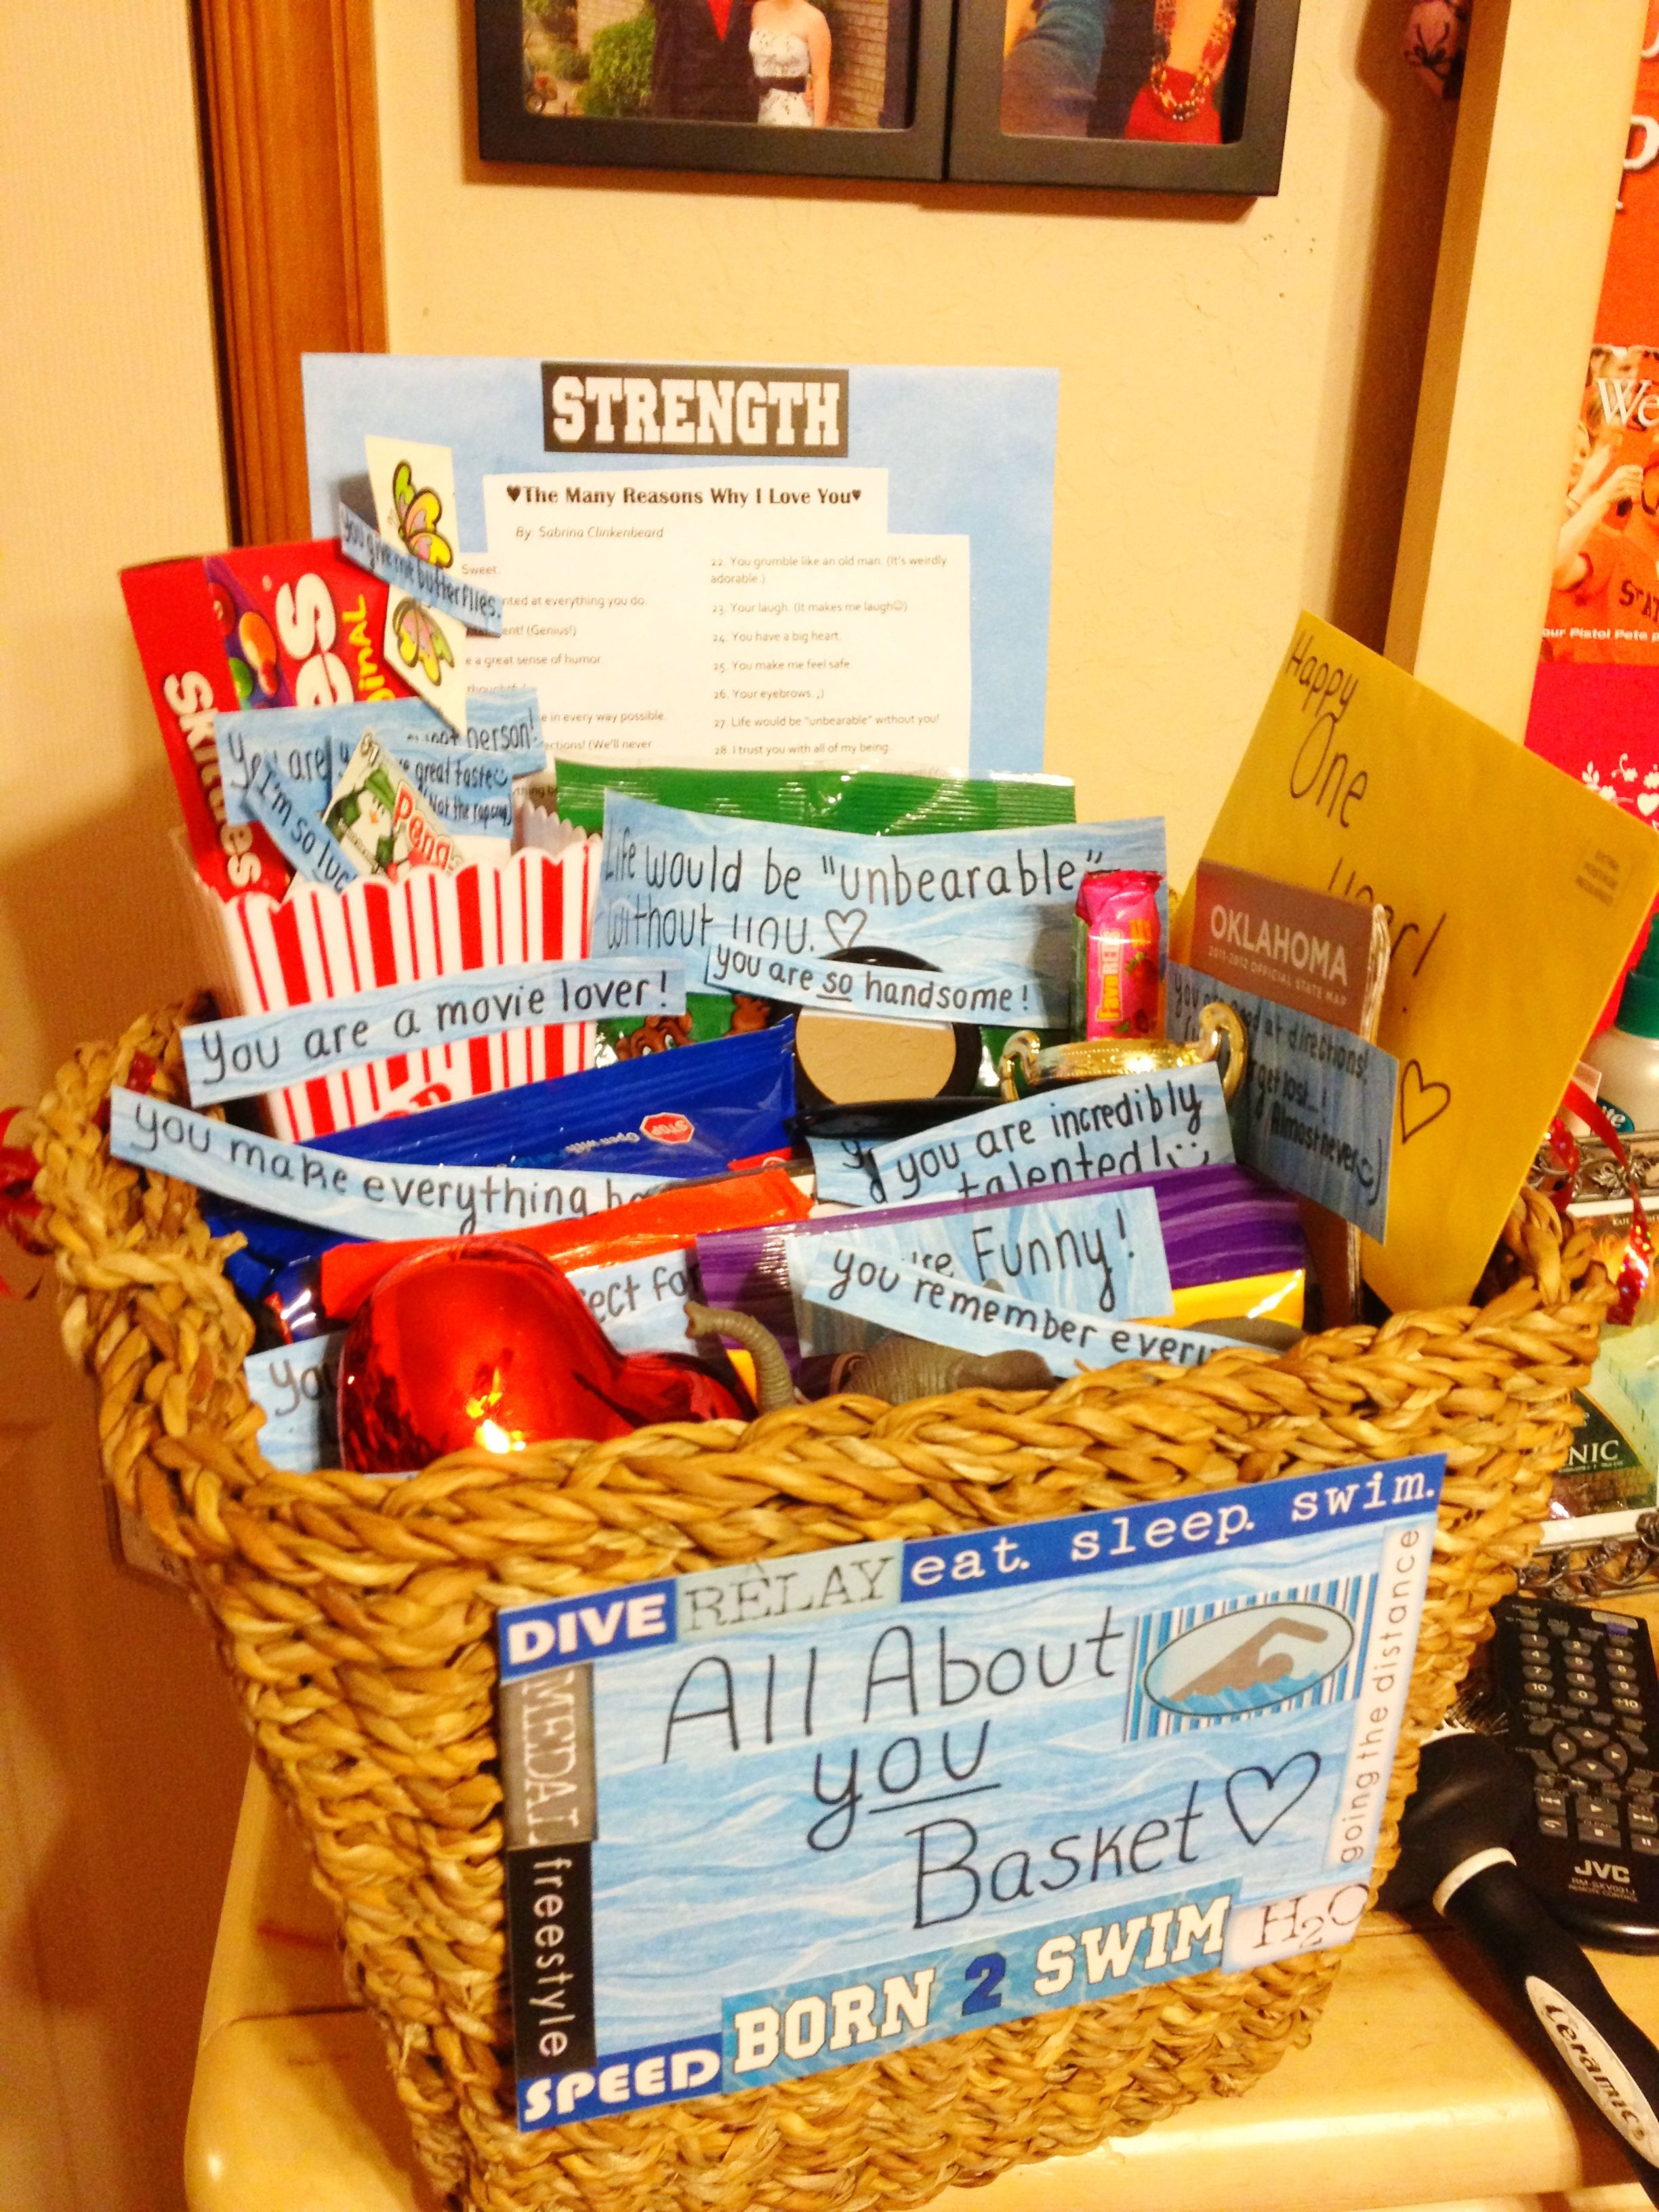 Best ideas about Gift Baskets Ideas For Boyfriend . Save or Pin All about you basket for an anniversary Very sweet and Now.